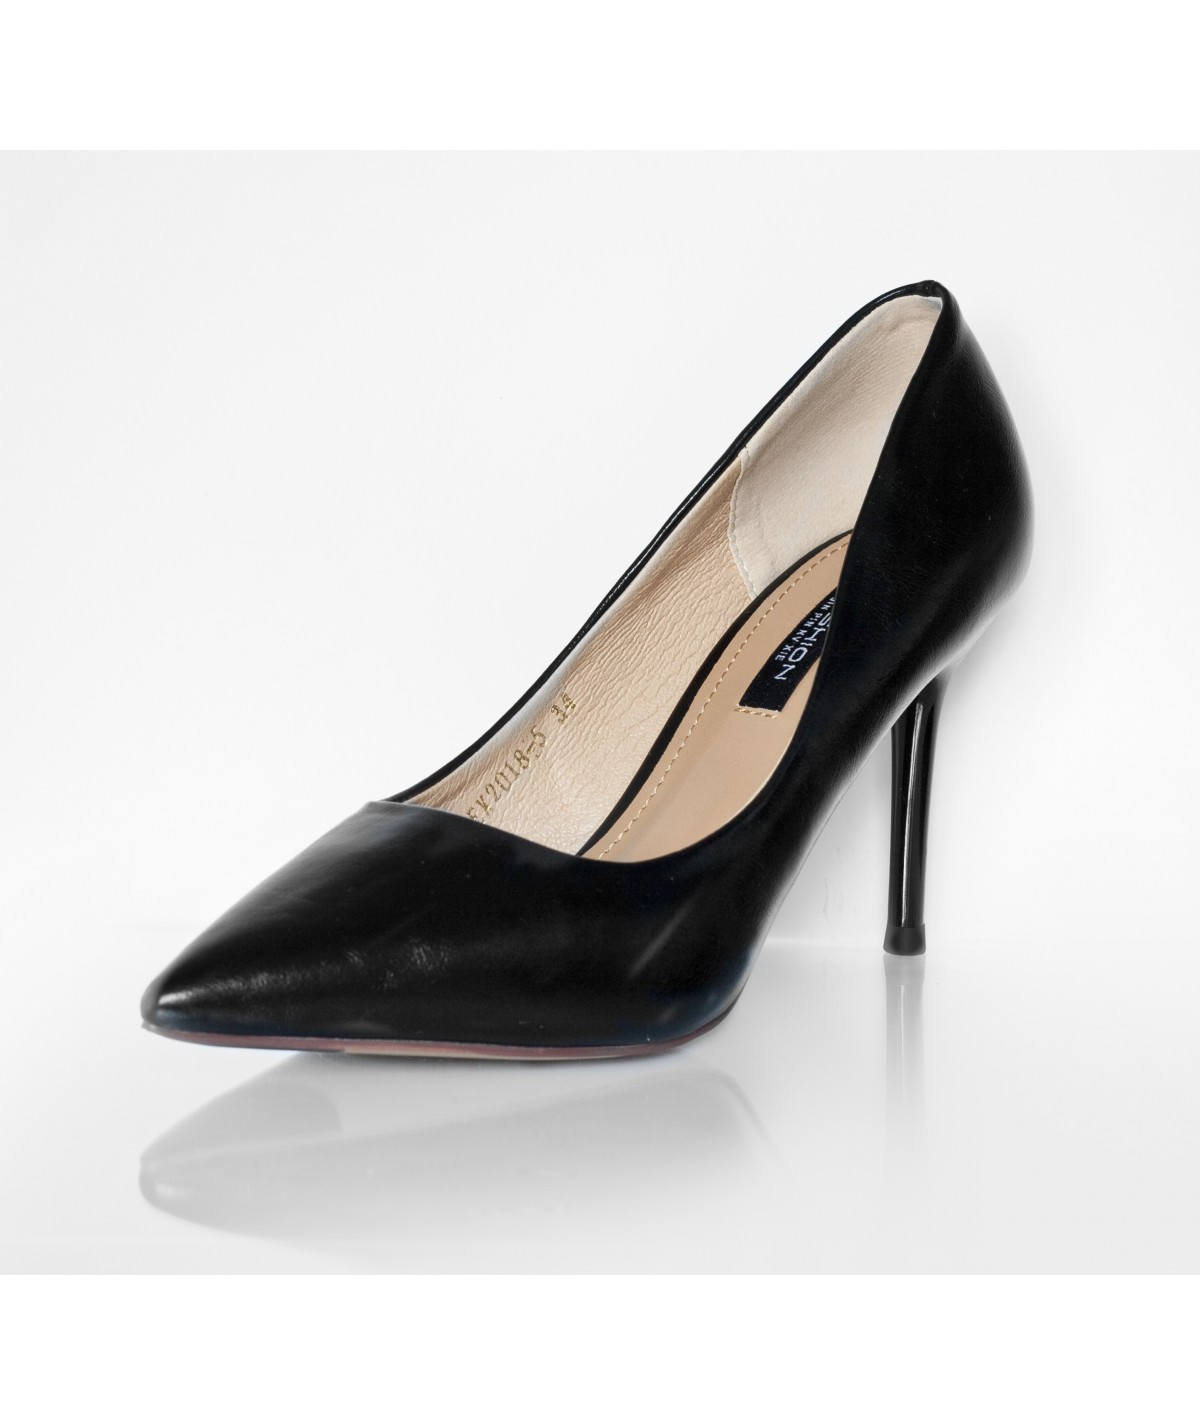 High Heels Black Leather - Petite Peds